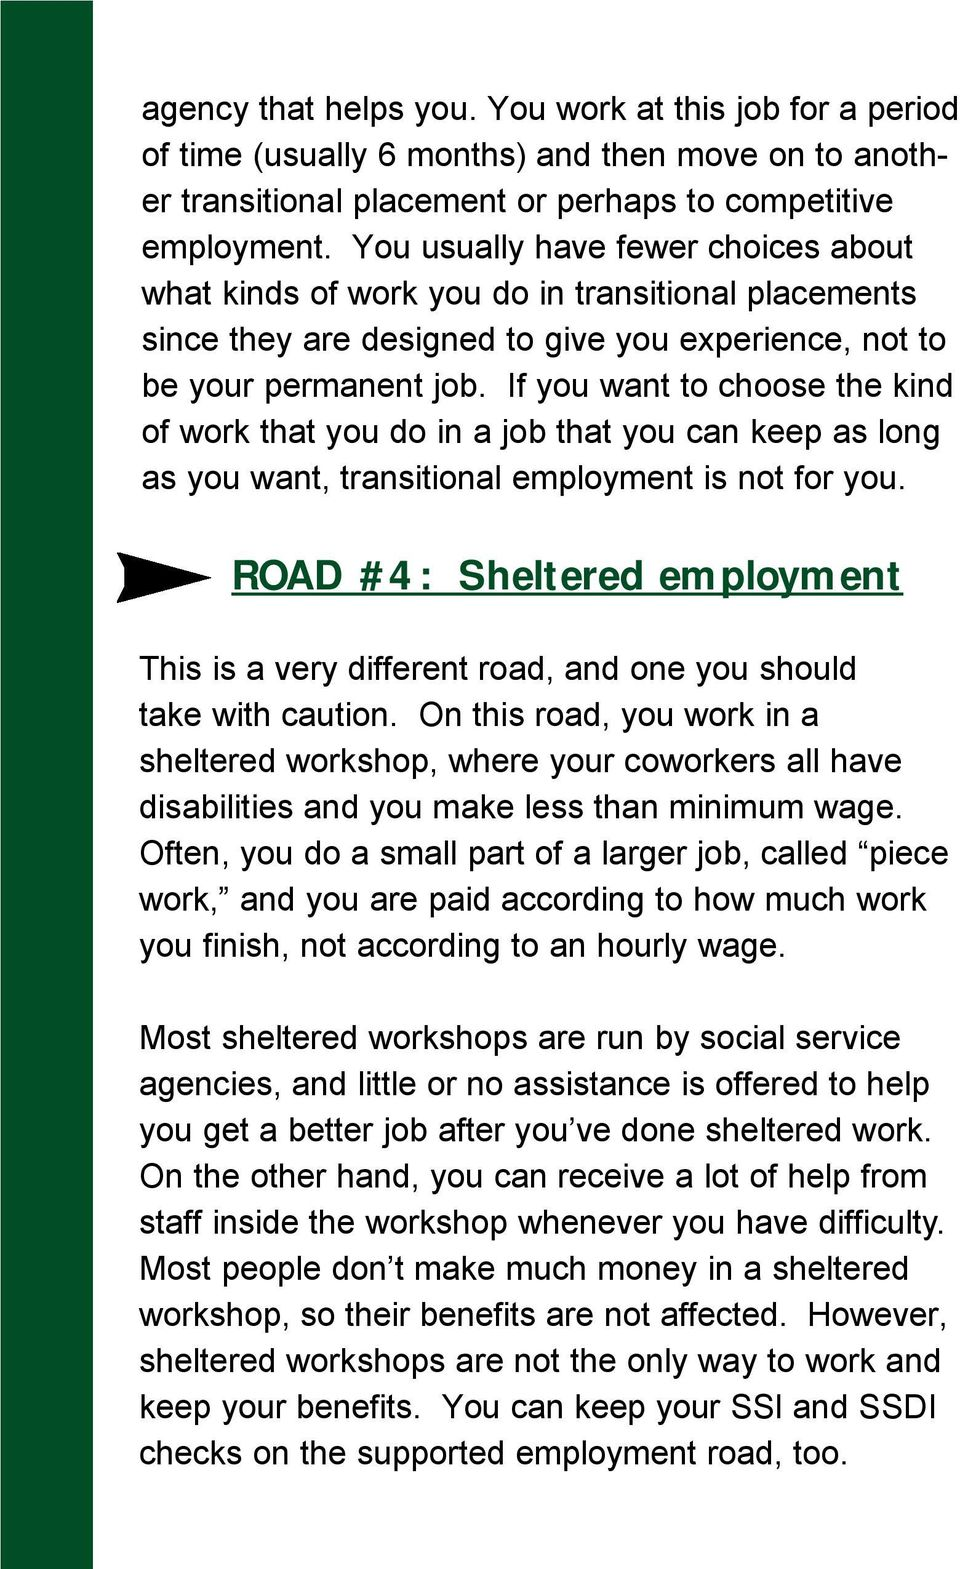 If you want to choose the kind of work that you do in a job that you can keep as long as you want, transitional employment is not for you.